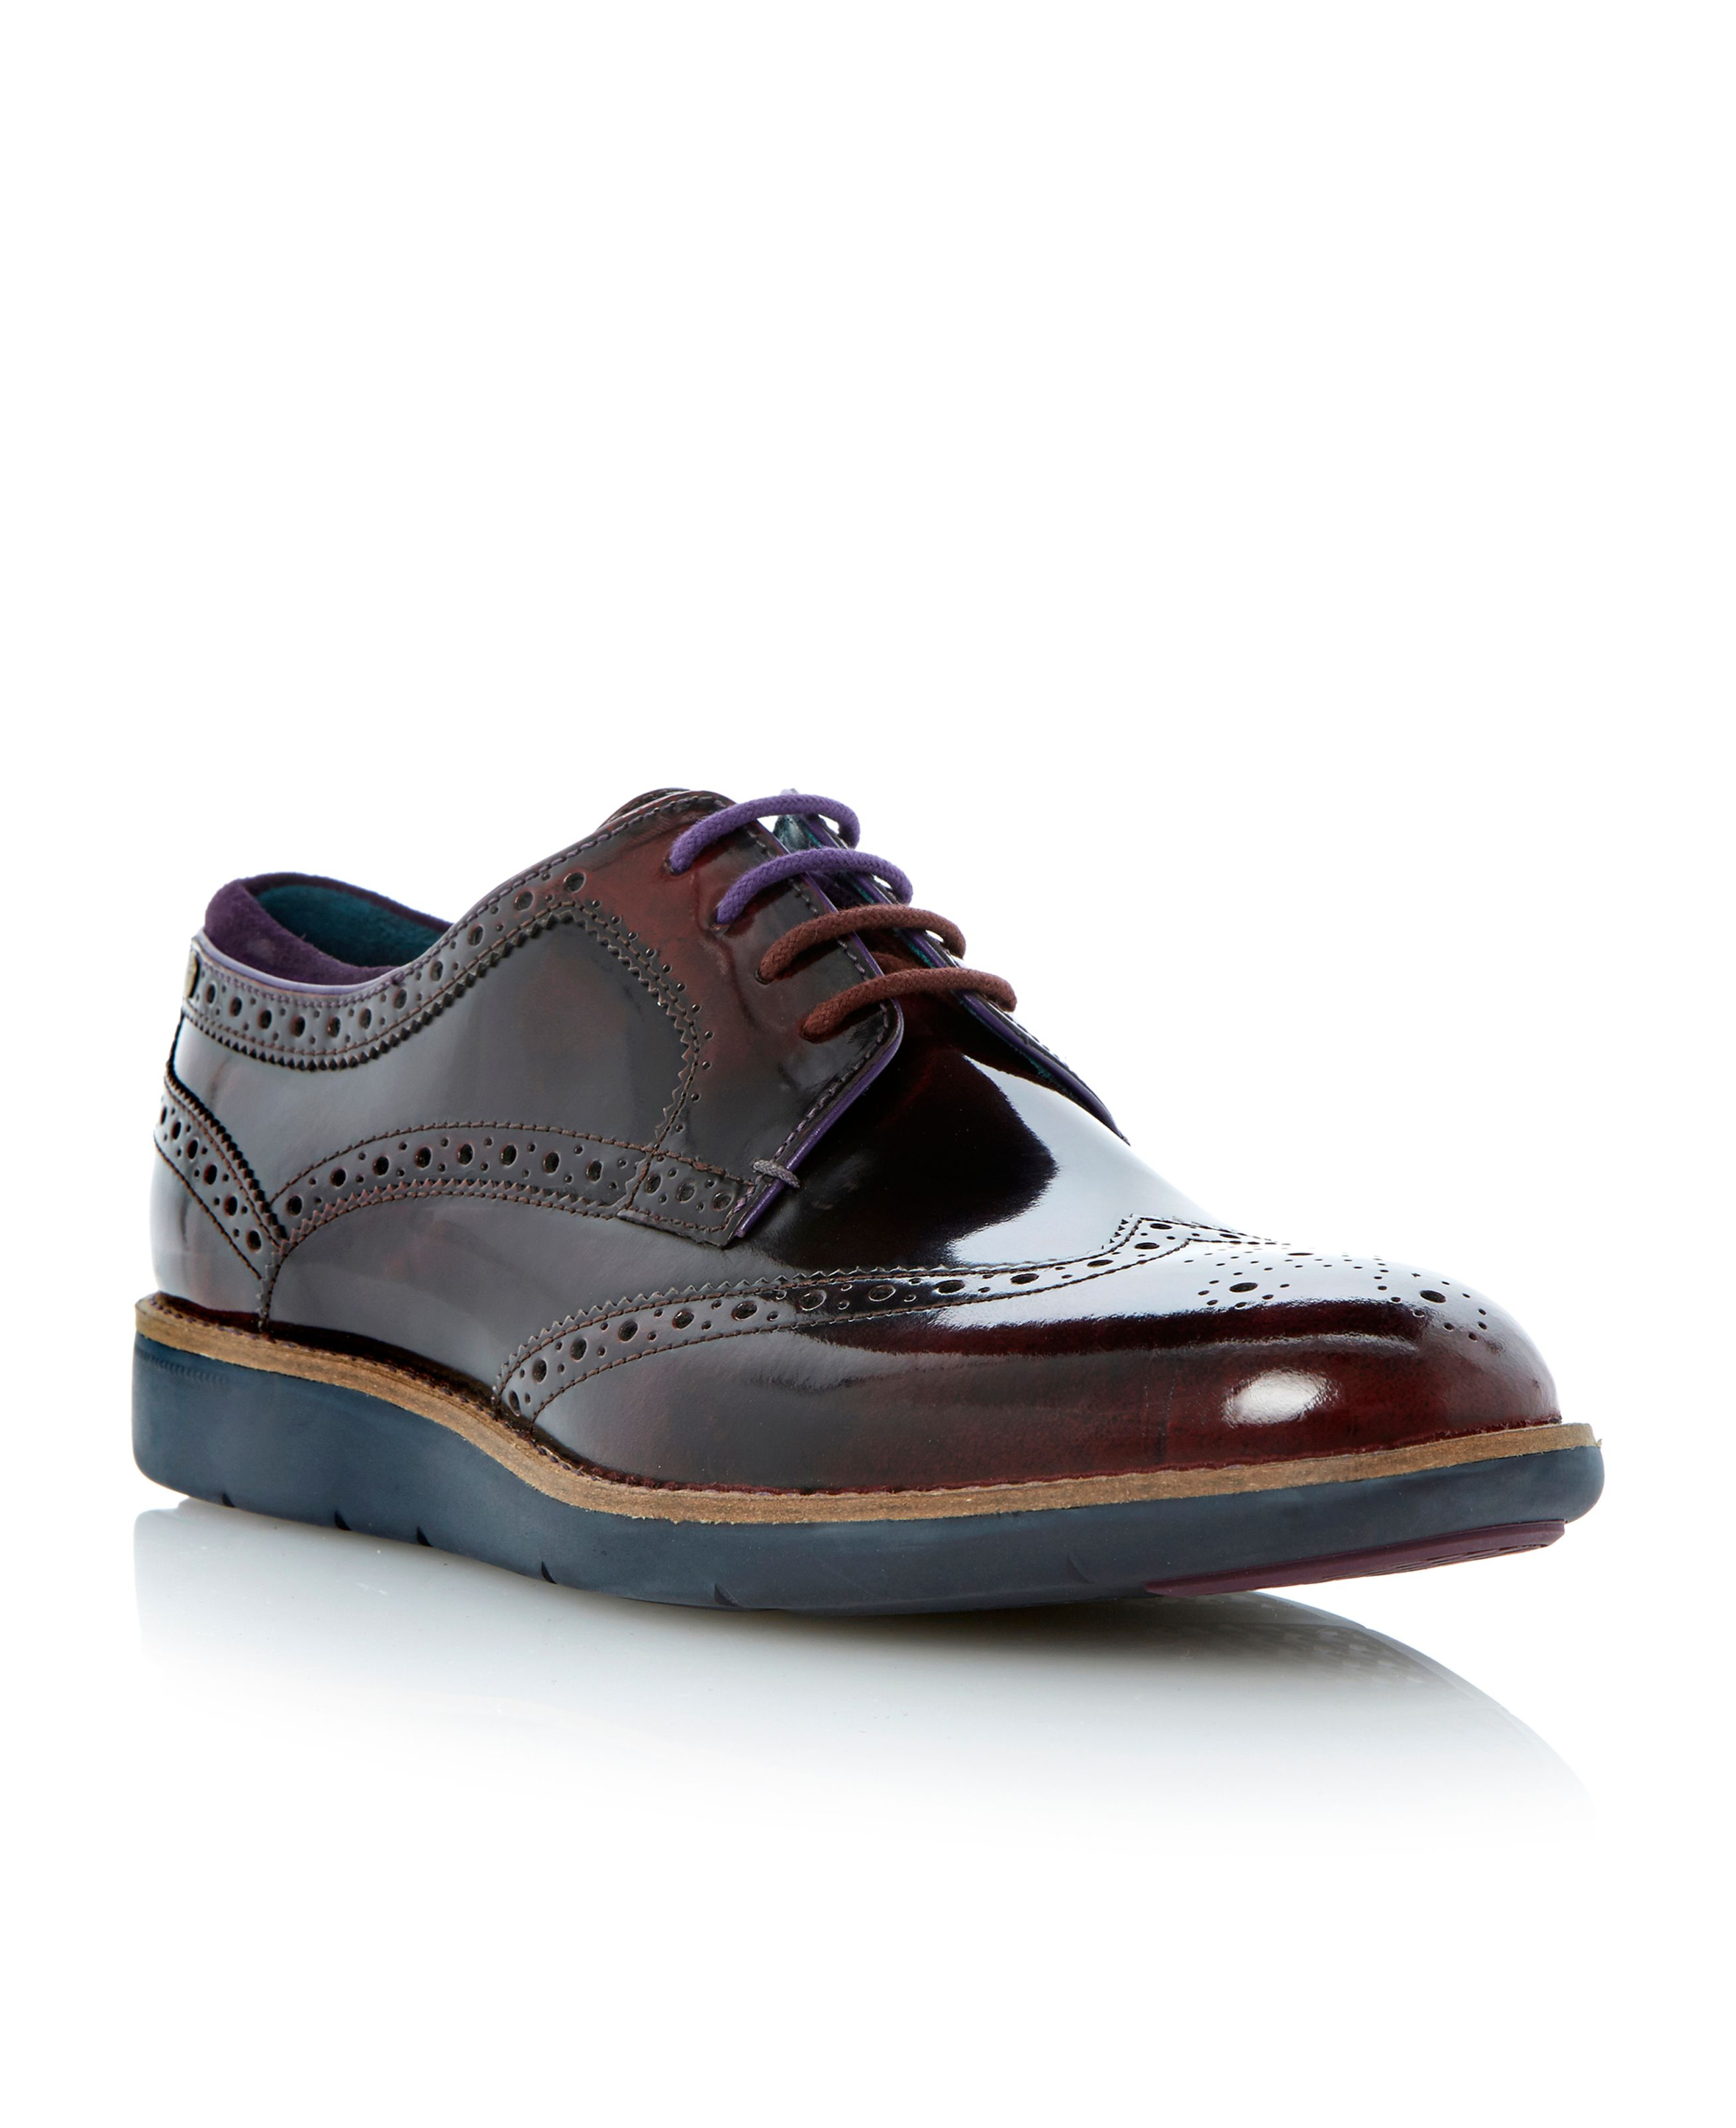 Ritivio extralight sole brogues